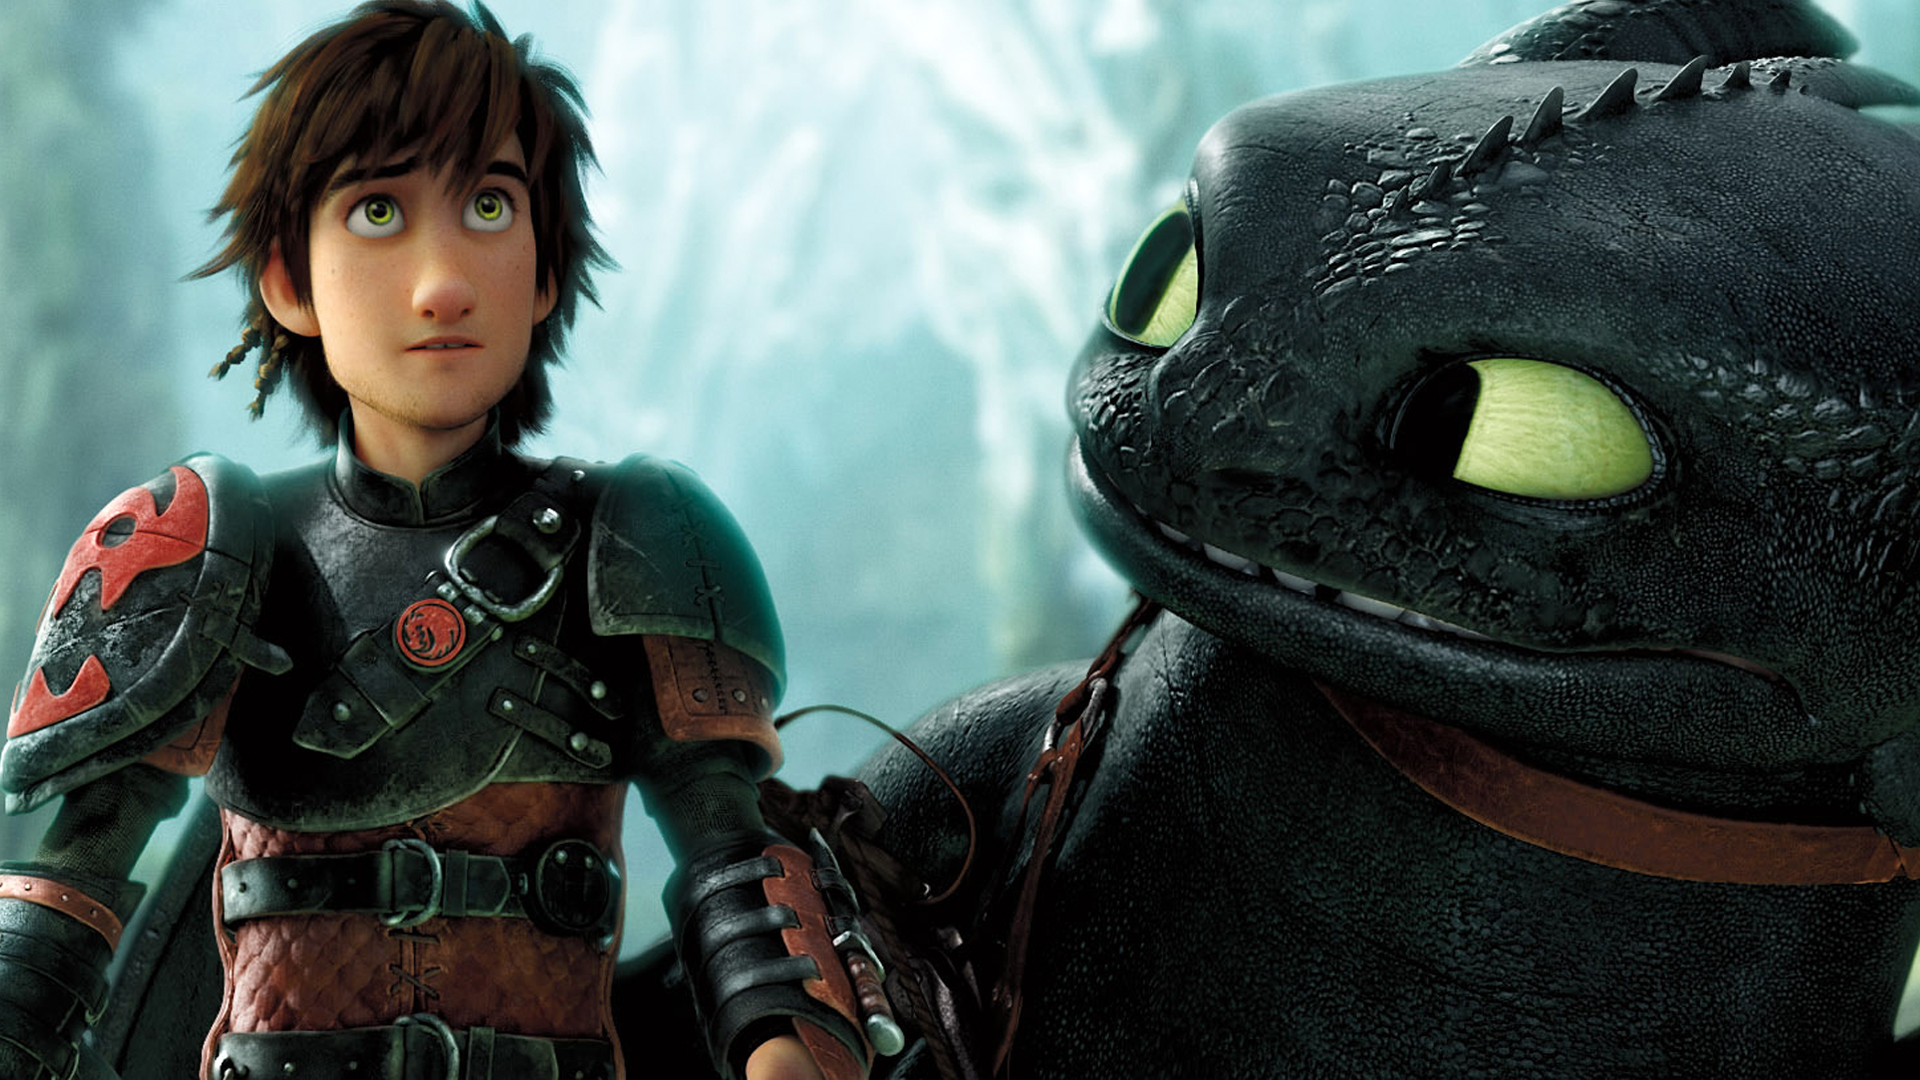 How To Train Your Dragon 2 Toothless And Hiccup Wallpaper